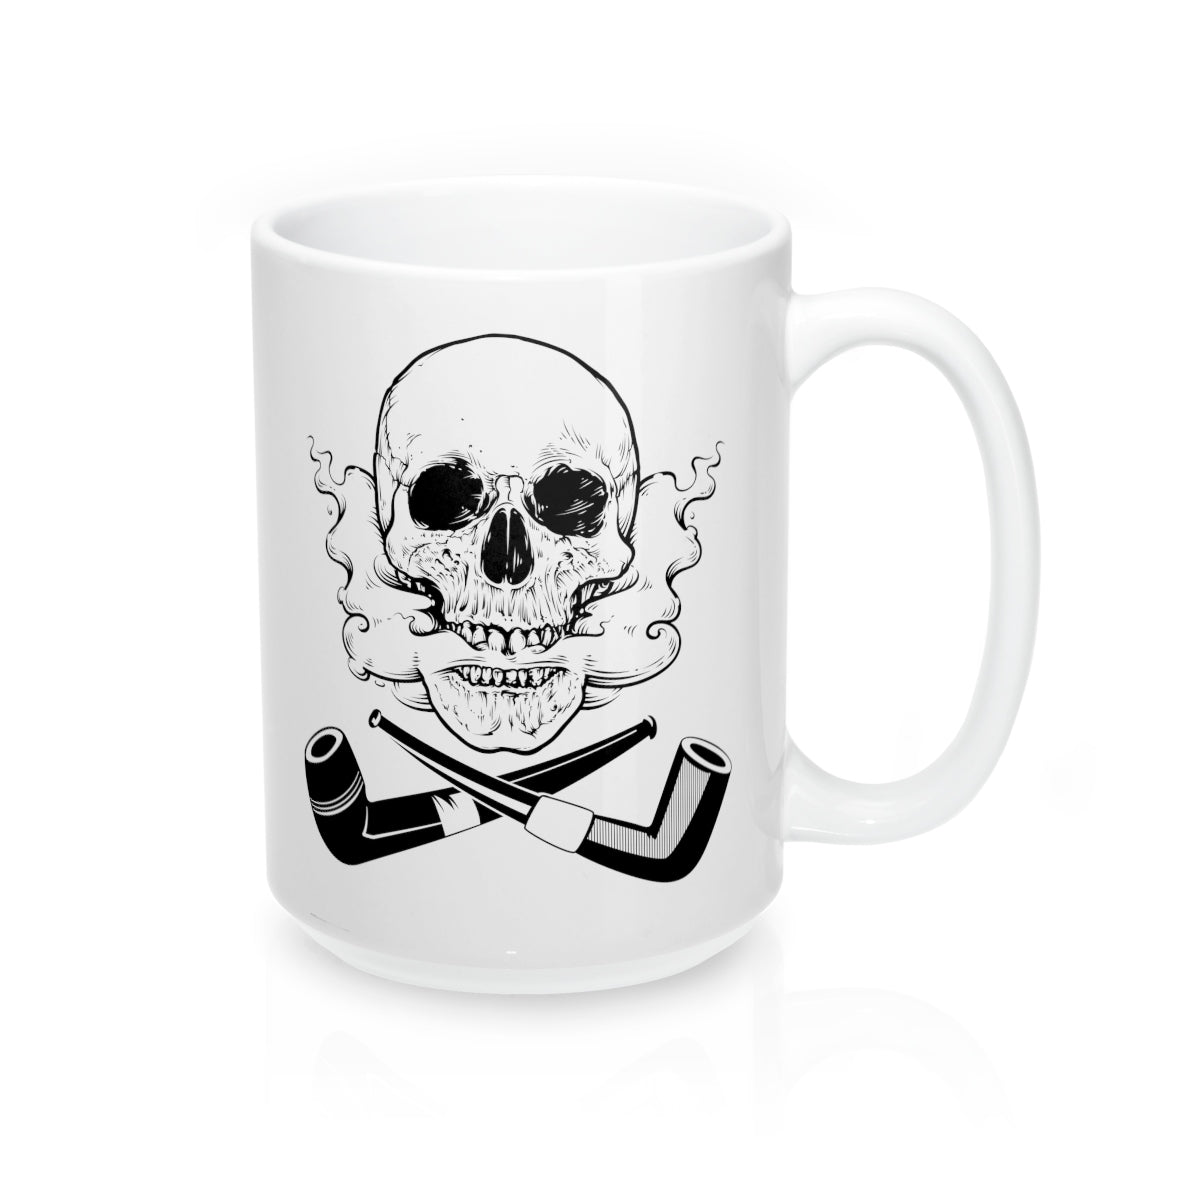 Skull and Cross Pipes Mug 15oz